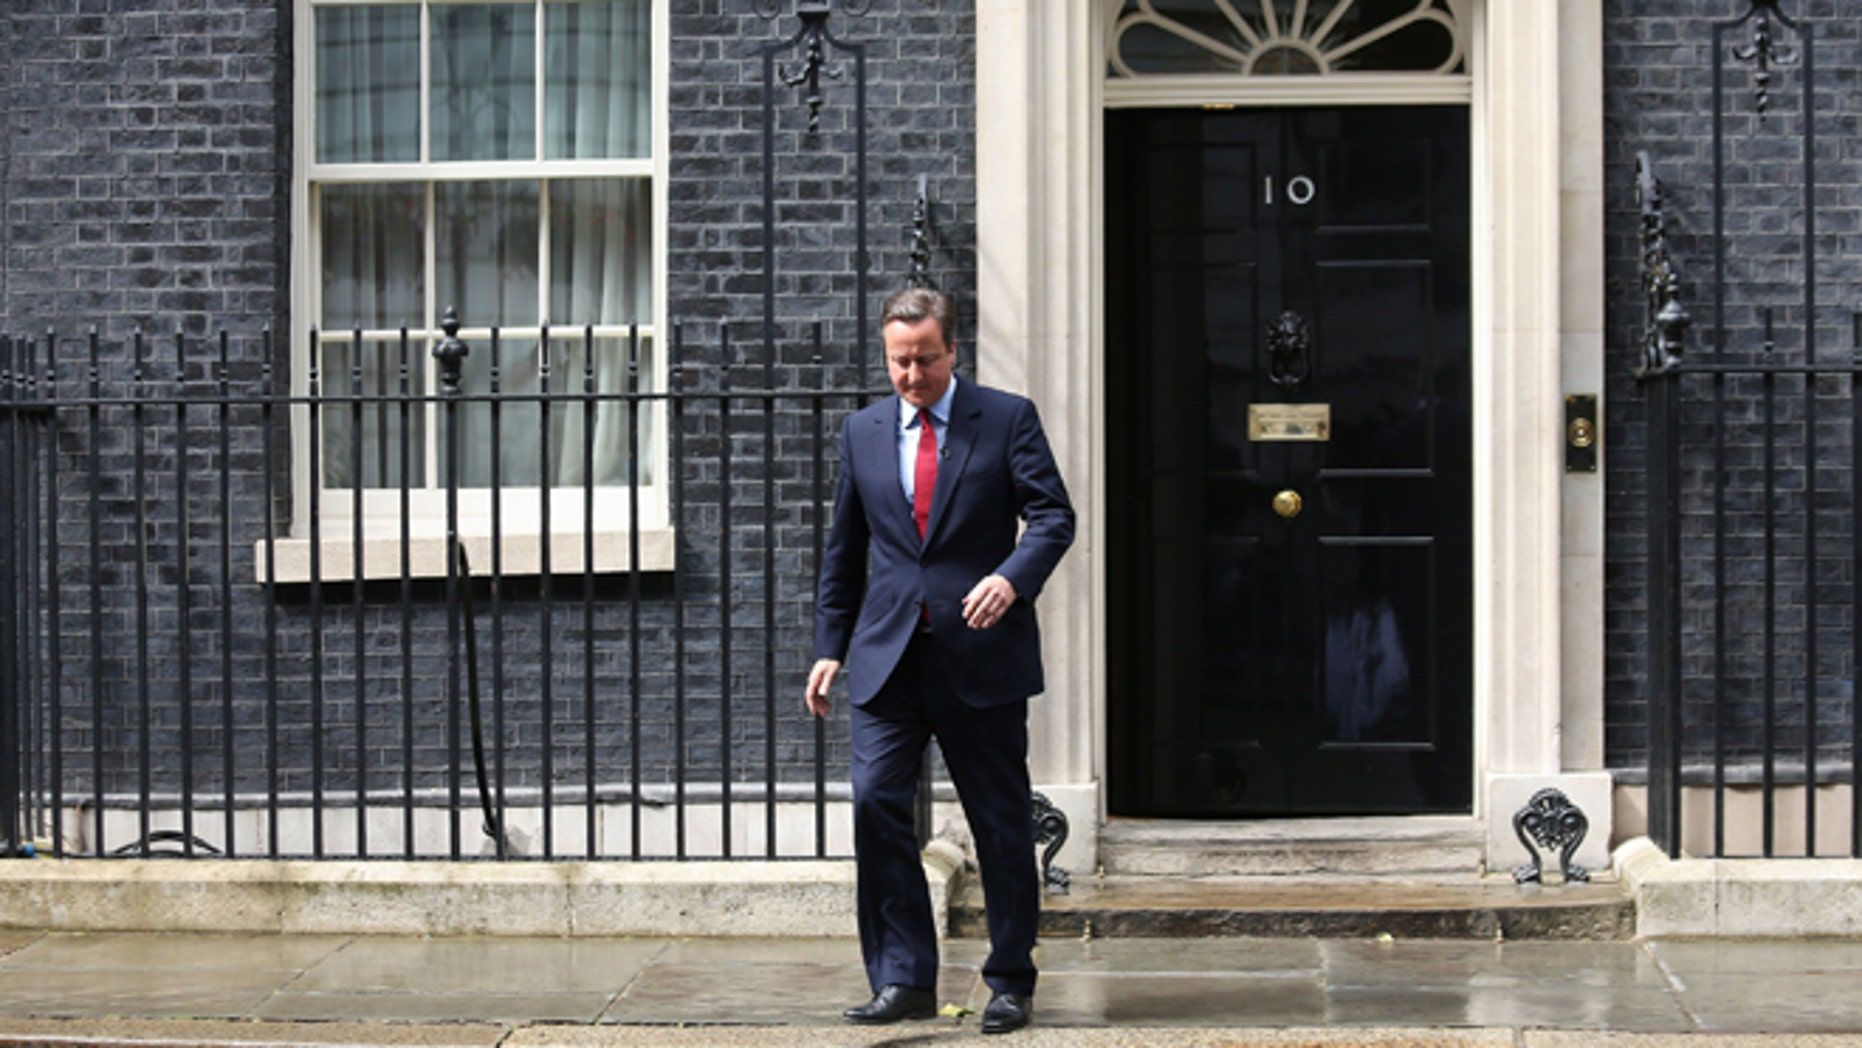 July 11: Britain's PM David Cameron walks outside No. 10 Downing Street.